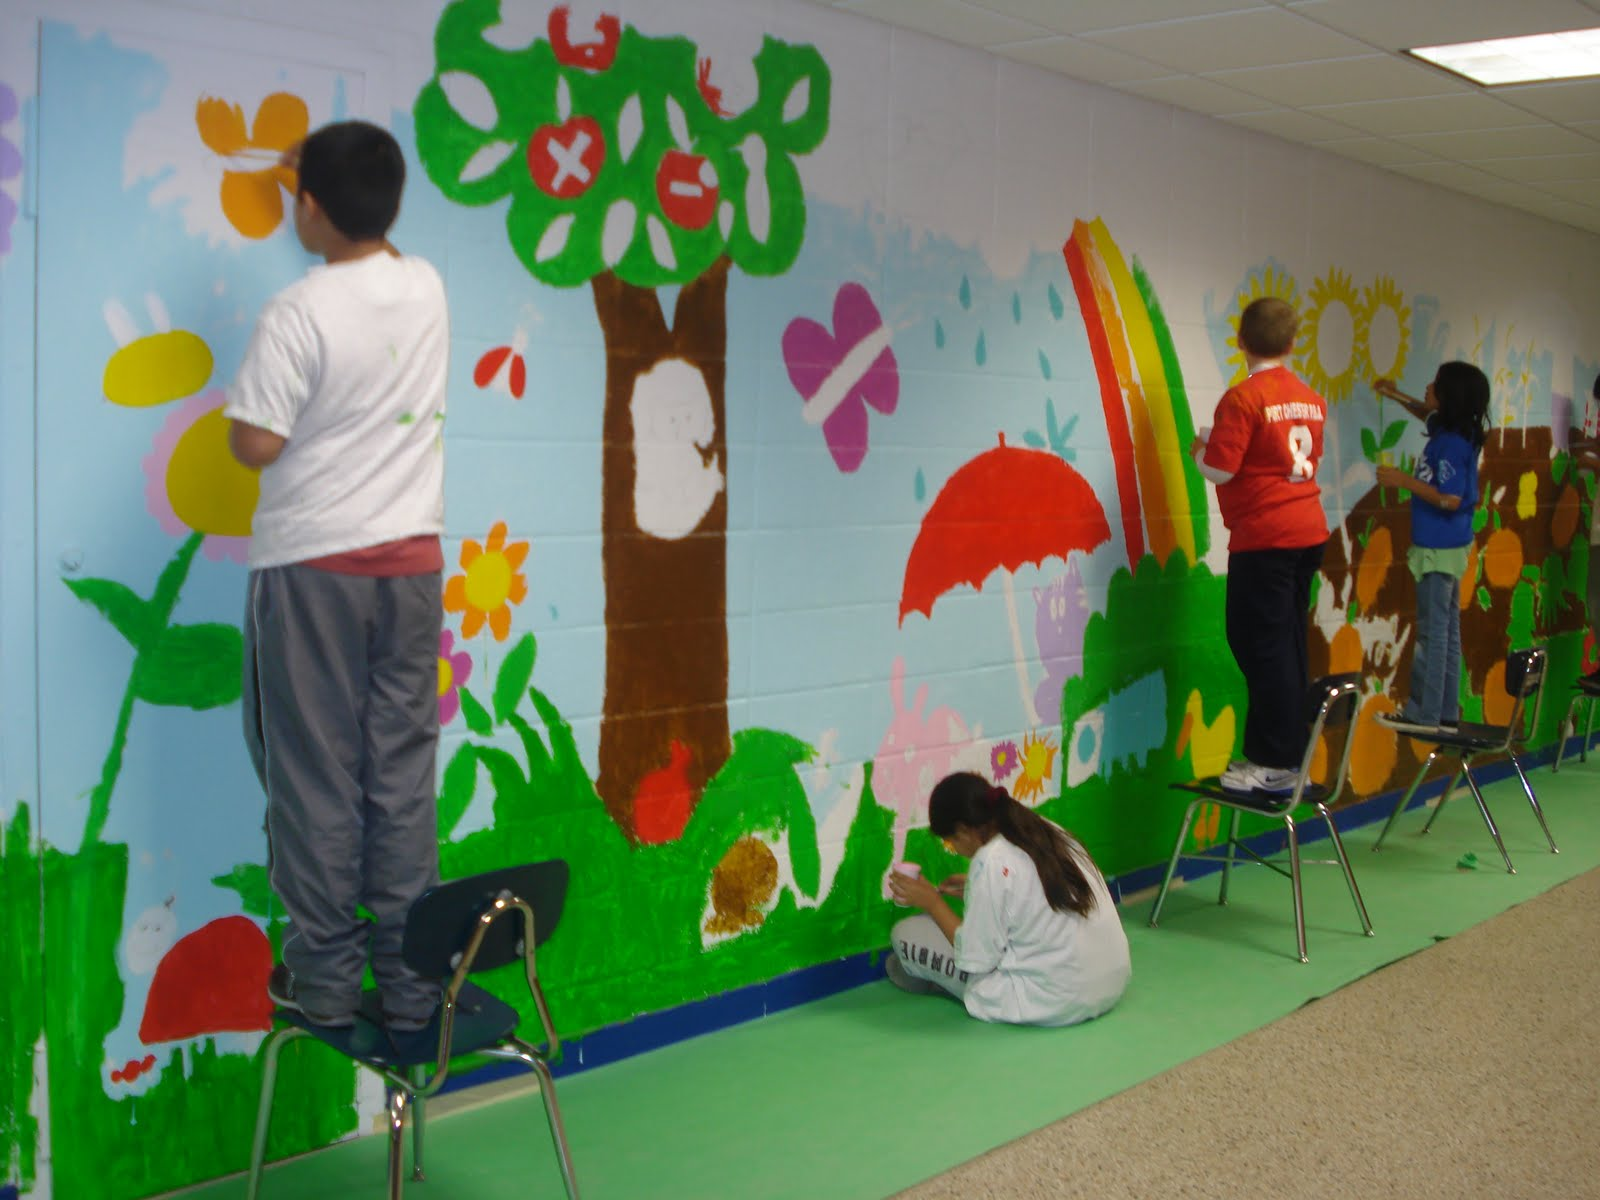 Terry taylor studio wall mural in progress for Children wall mural ideas